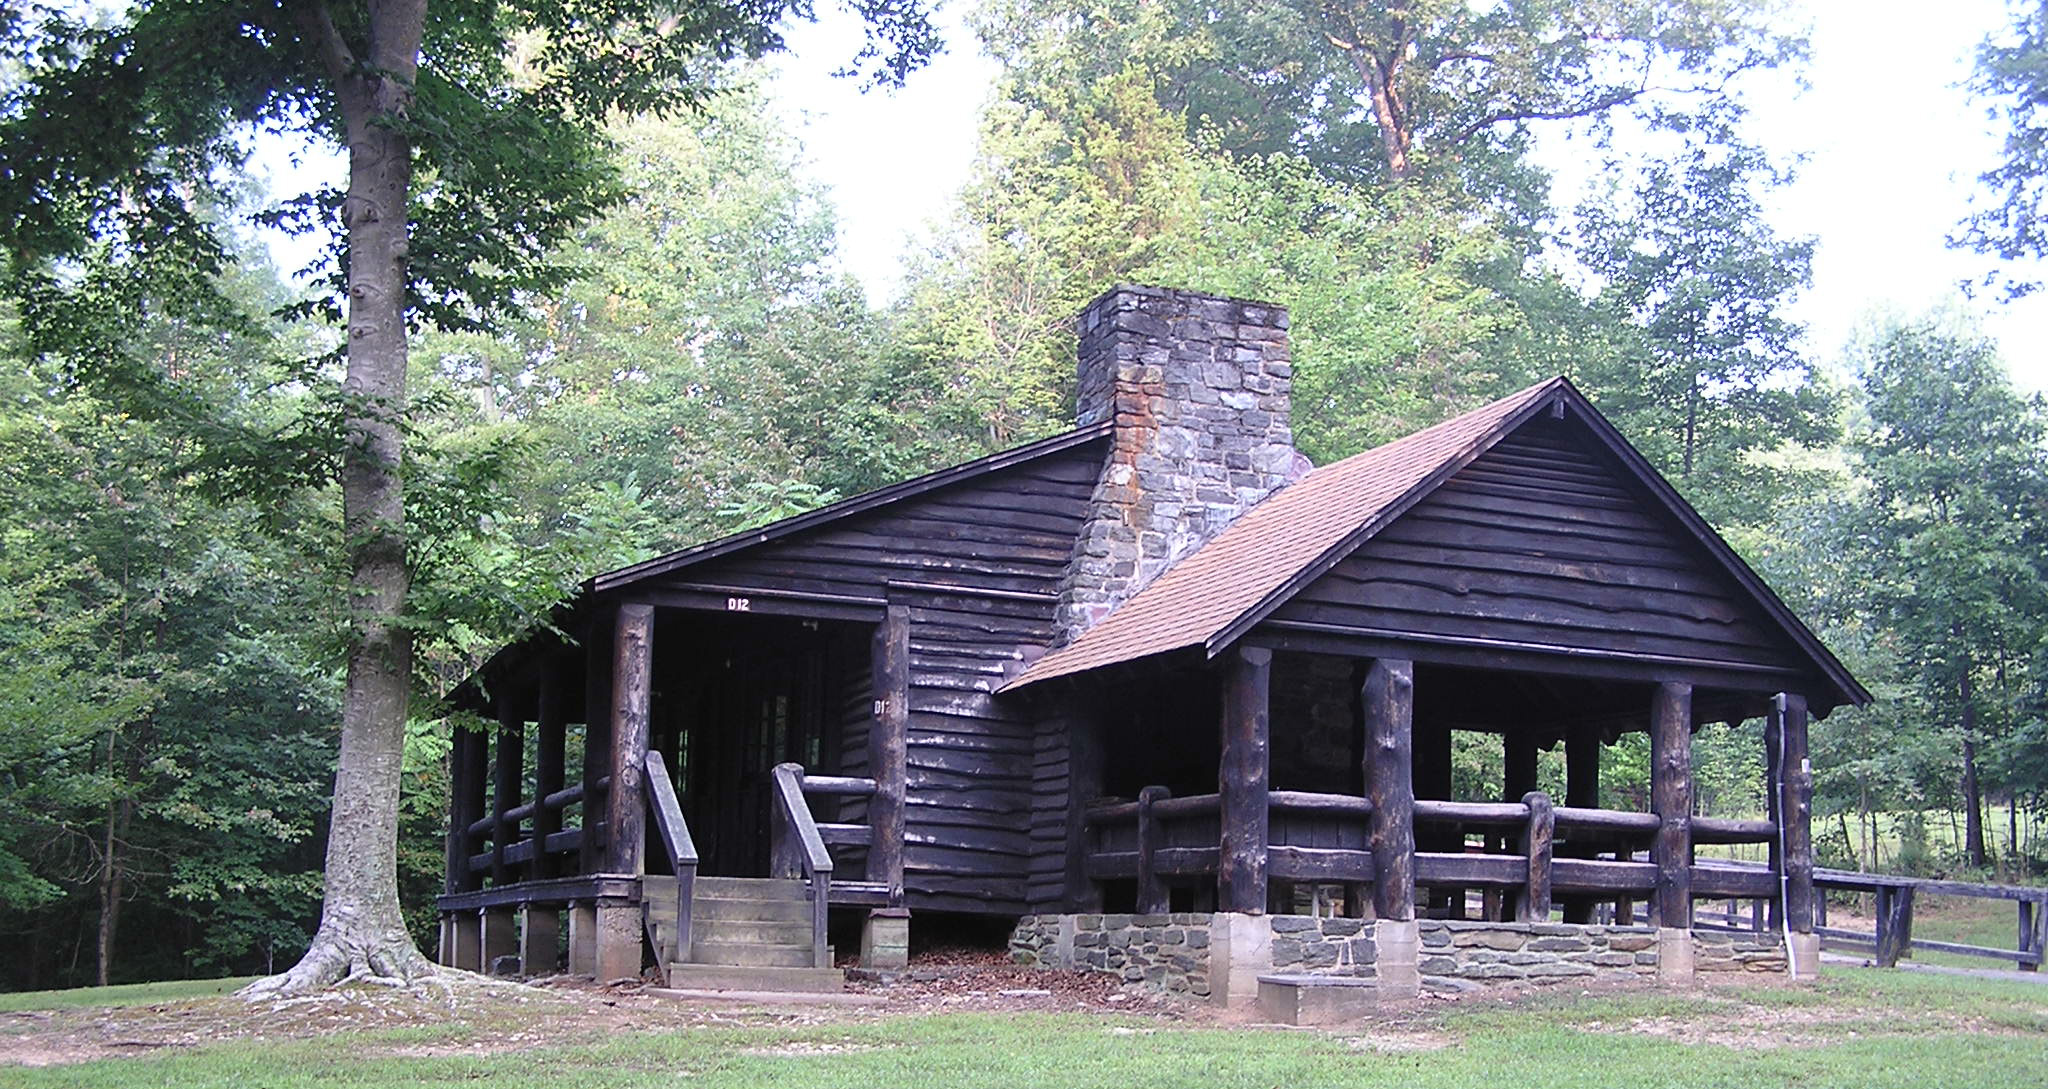 Group cabin camping prince william forest park u s for Camping grounds with cabins